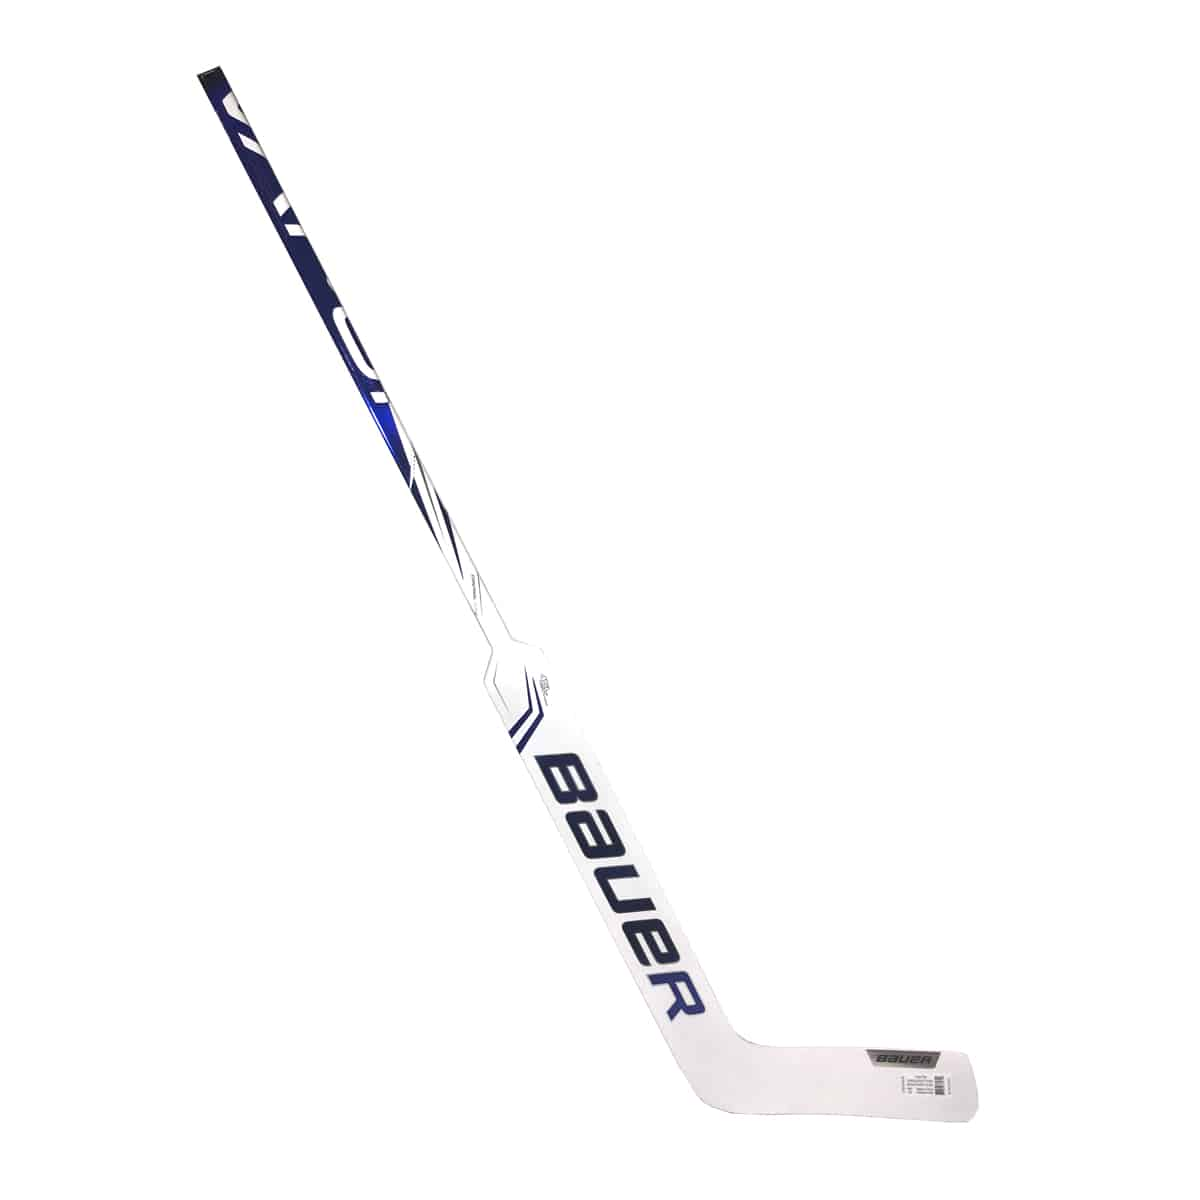 Goalies Plus Best Price Bauer Vapor 2x Pro Intermediate Goalie Stick